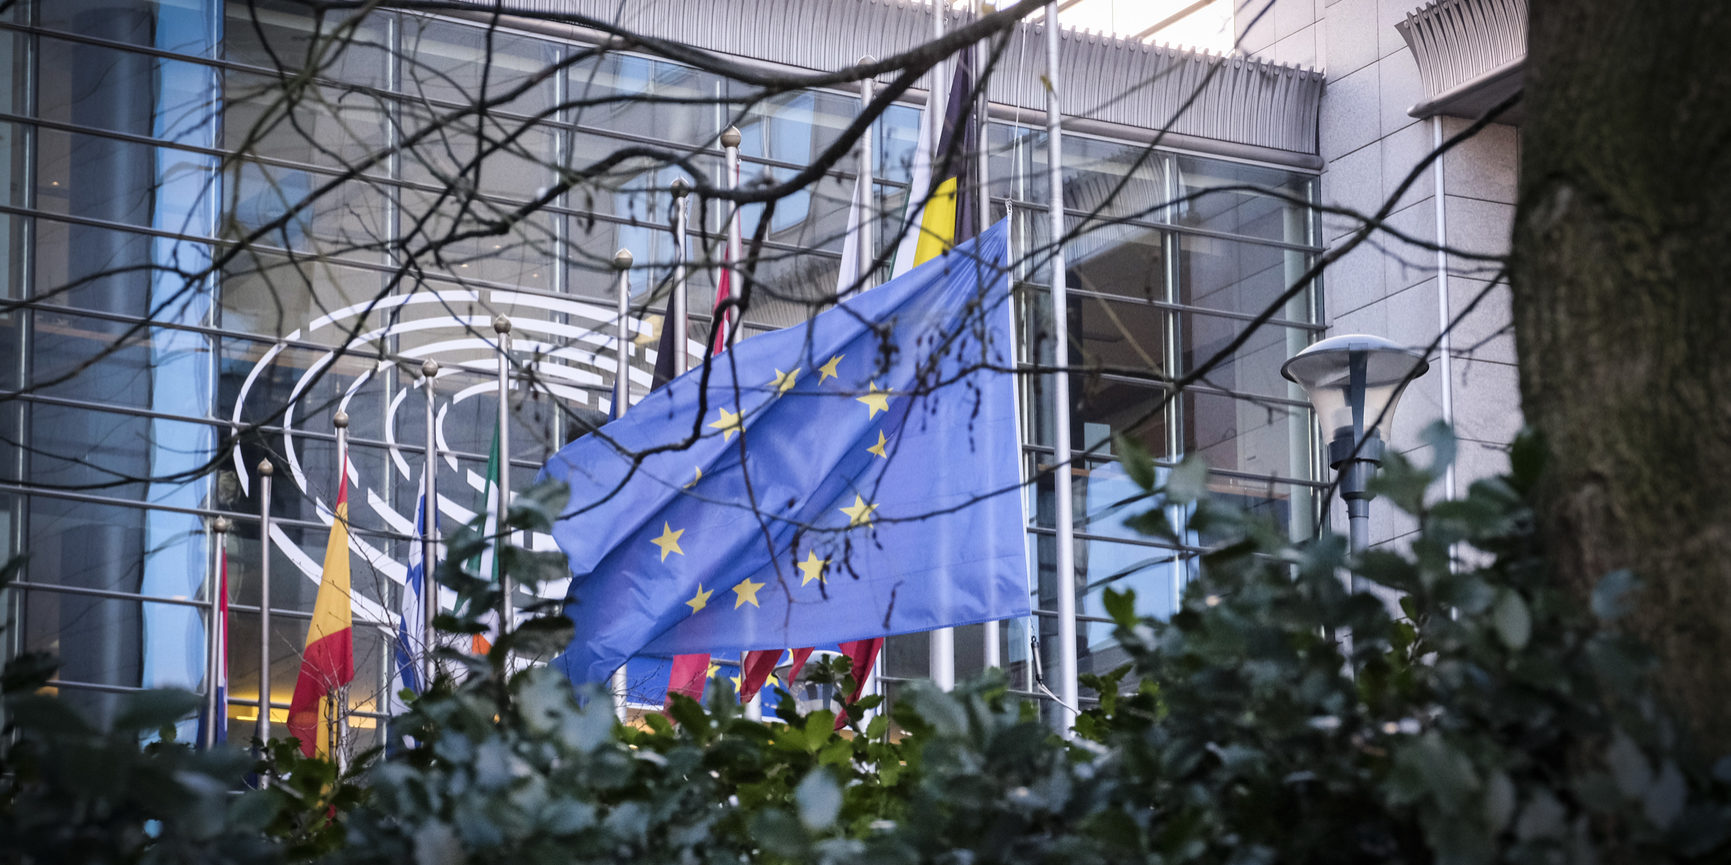 EU and French flags at half-mast at the European Parliament in Brussels as a tribute to the victims of the terrorist attack in Strasbourg of 11/12/2018